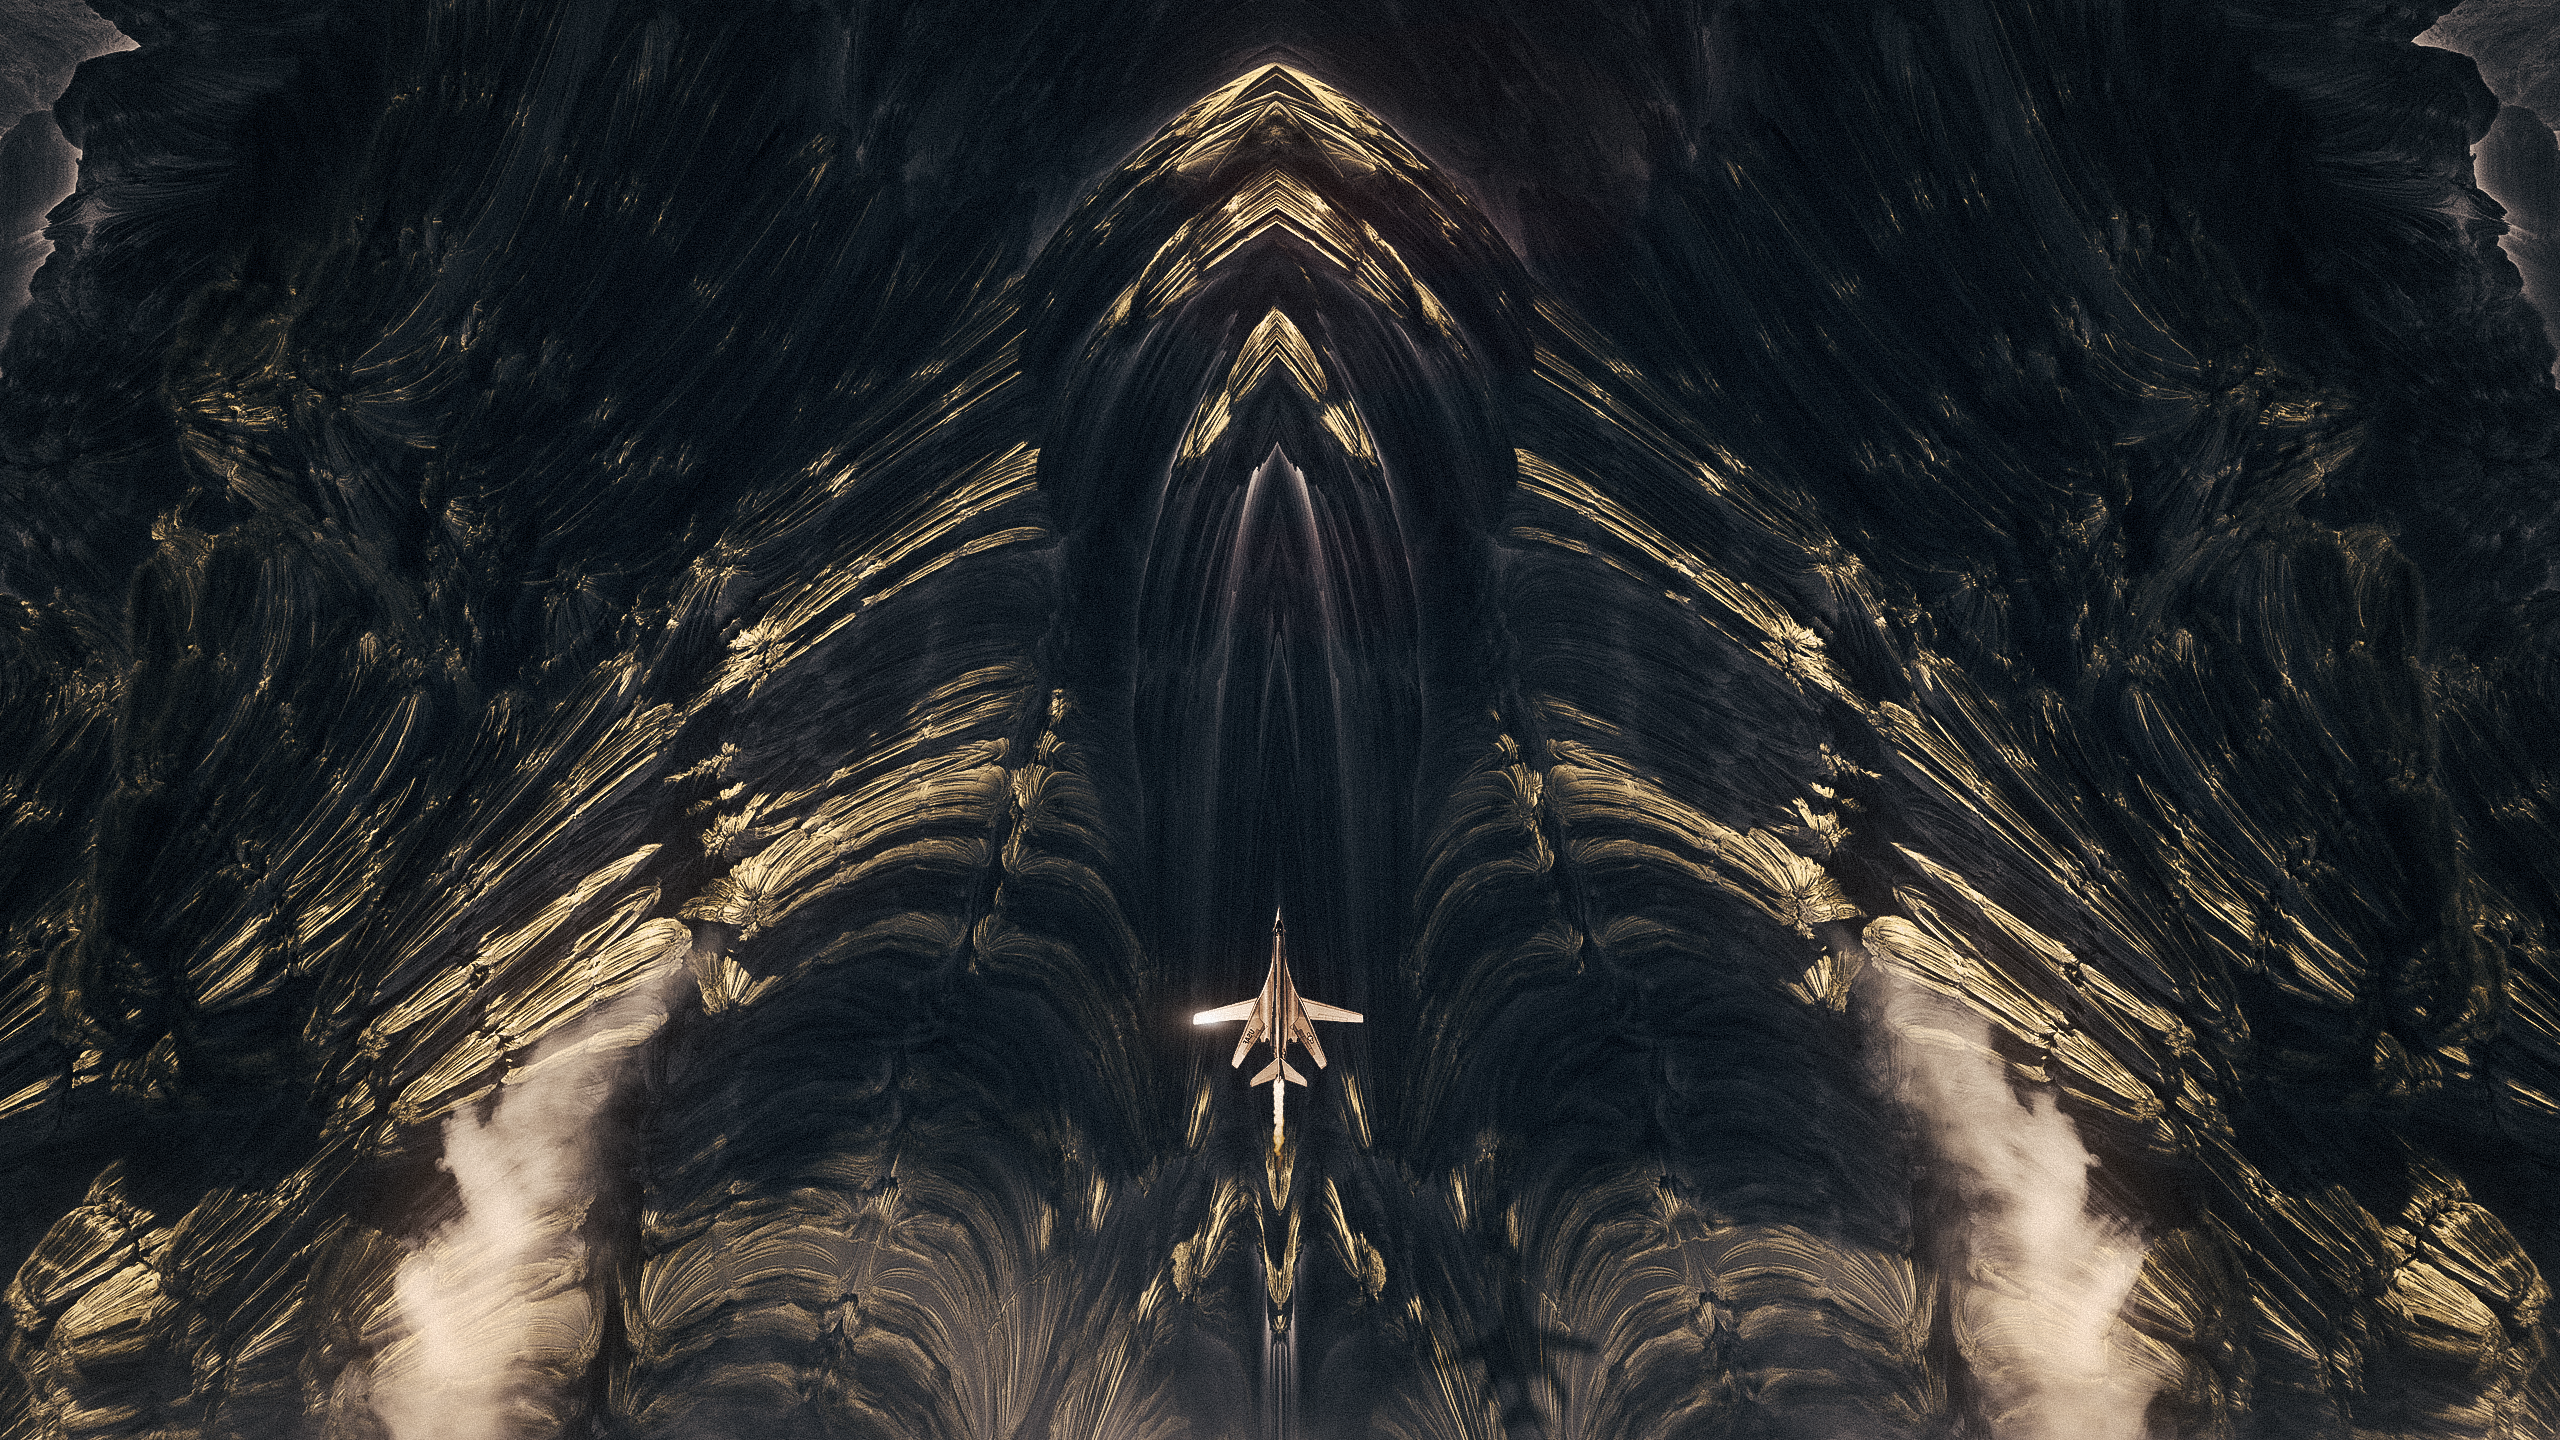 The Mandelbrot Loneliness Abstract Series by Nikita KolbovskiyThe Mandelbrot Loneliness Abstract Series by Nikita Kolbovskiy